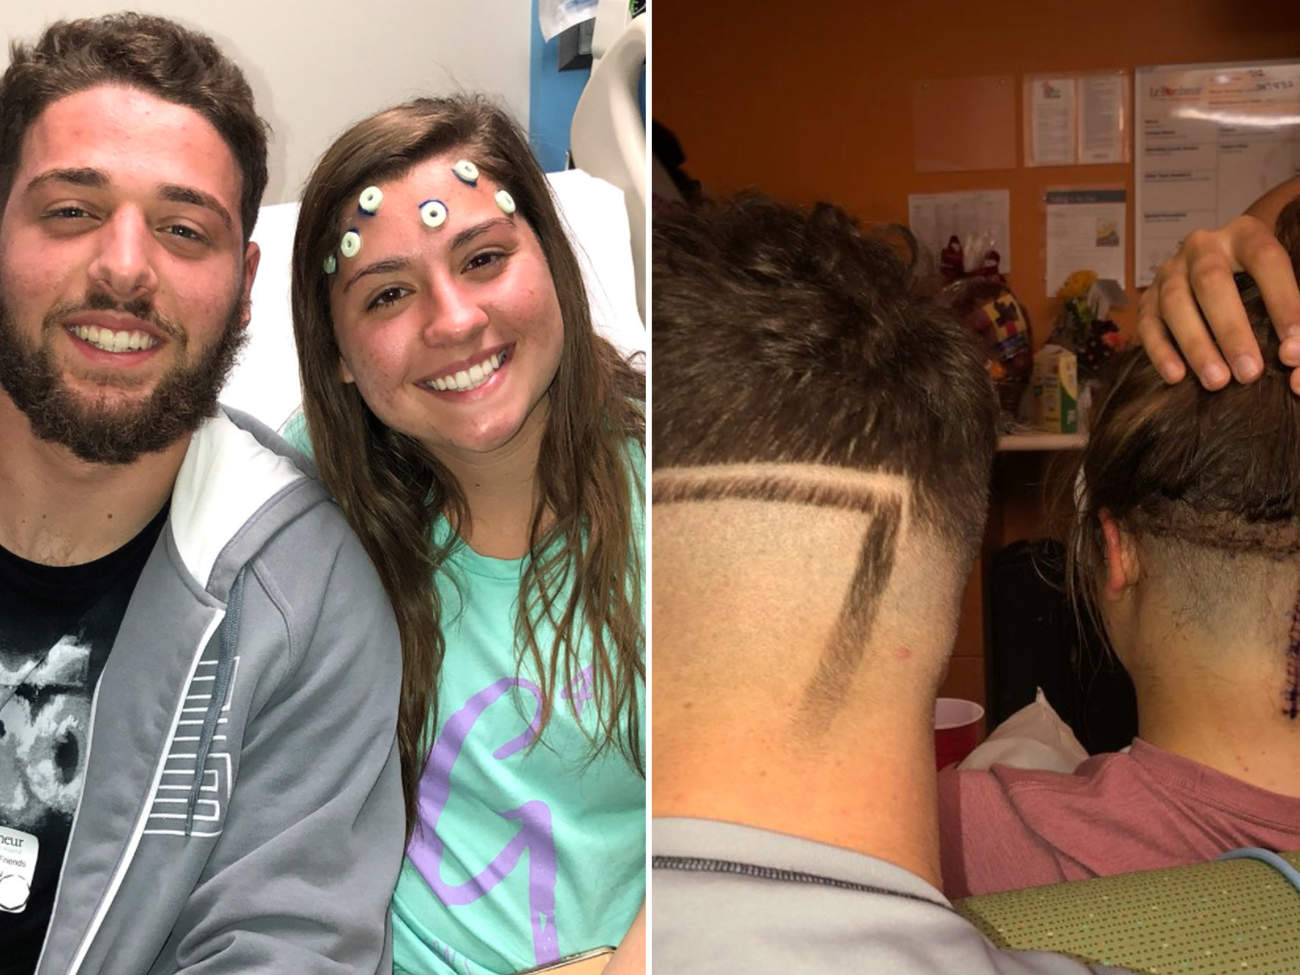 19-Year-Old Brother Gets a Haircut to Match His Sister's 10-Inch Scar from Brain Tumor Surgery